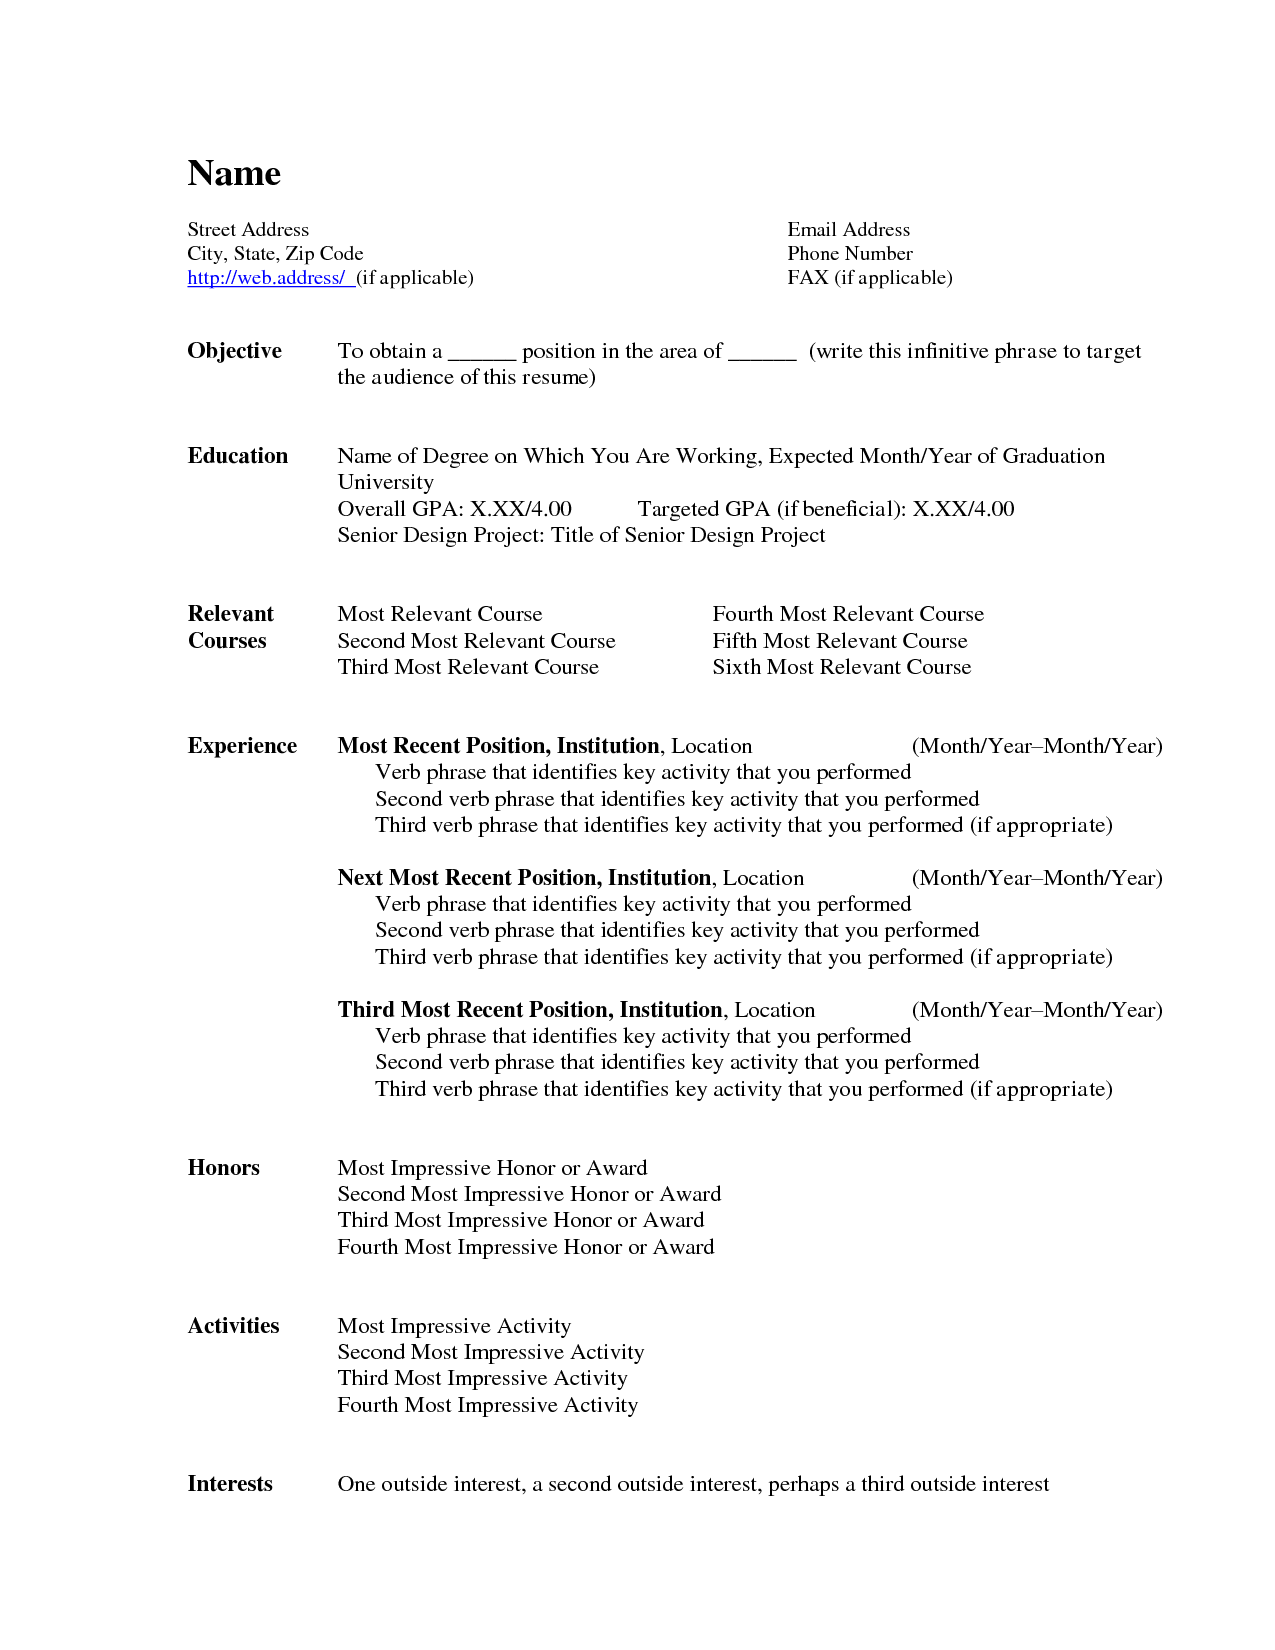 Free Resume Templates Word 2010 Best Microsoft Word Resume Template Resume Builder Resume Resume  Http